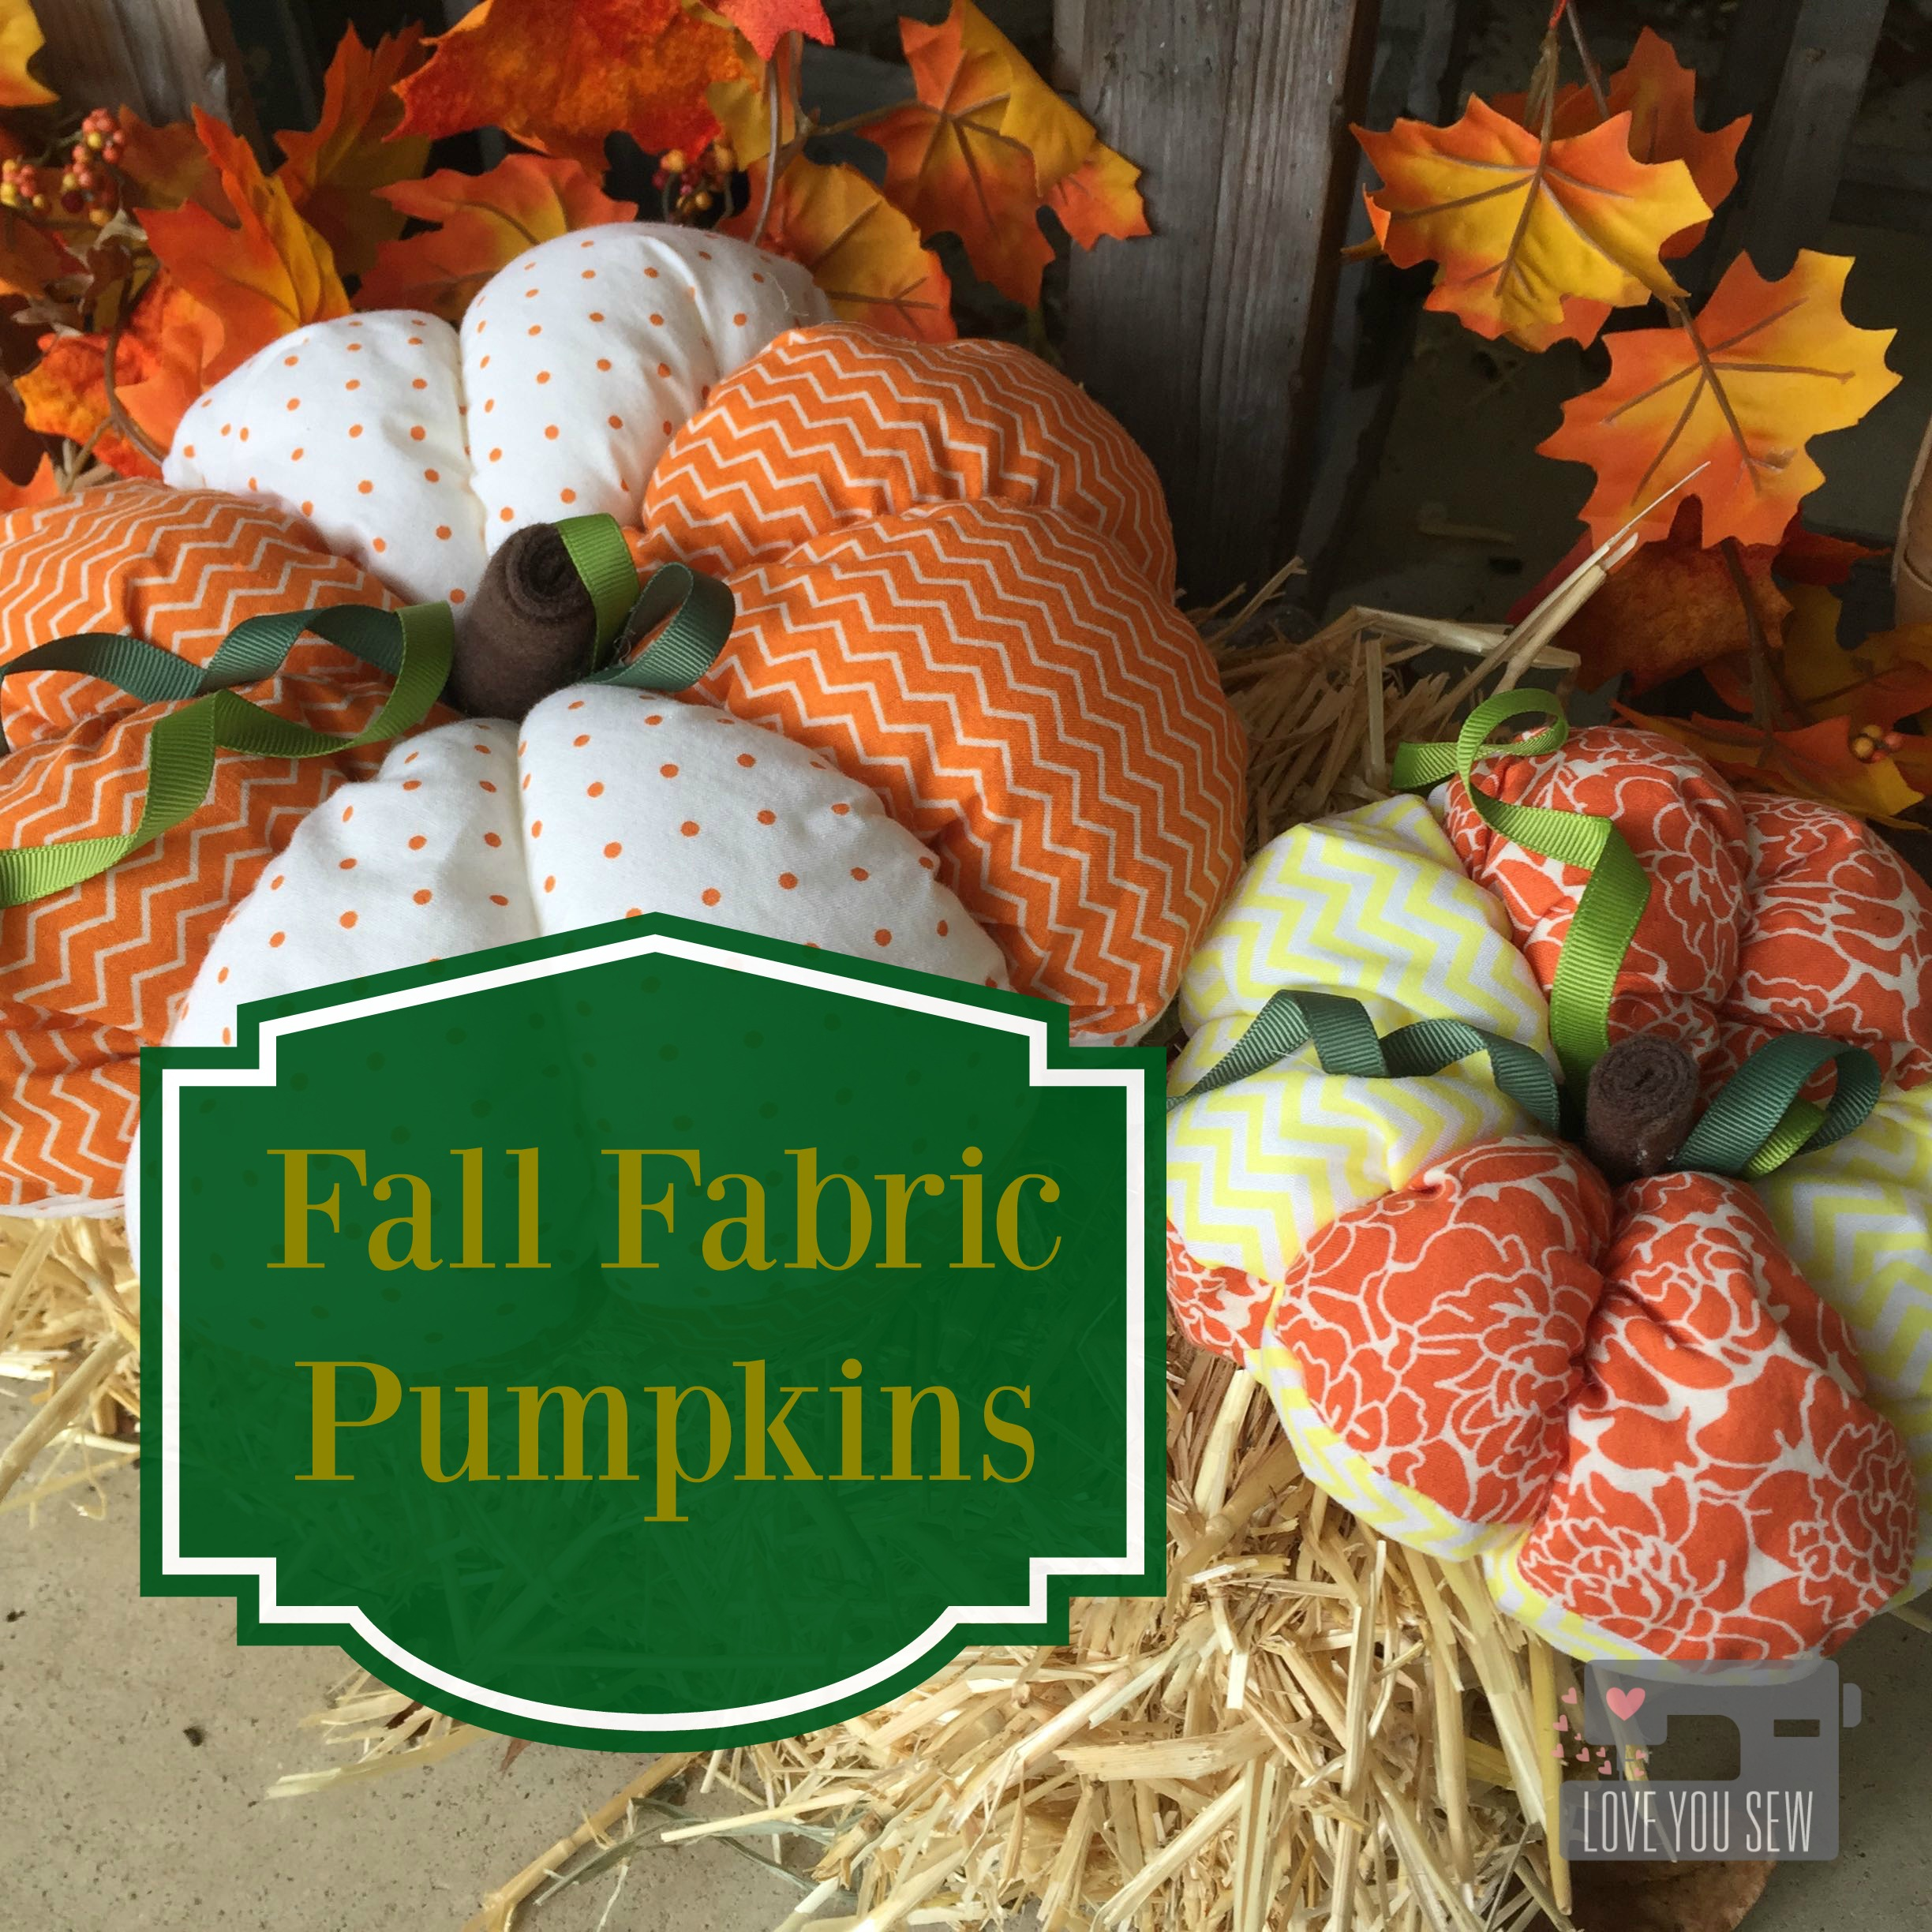 Fall Fabric Pumpkin Decor